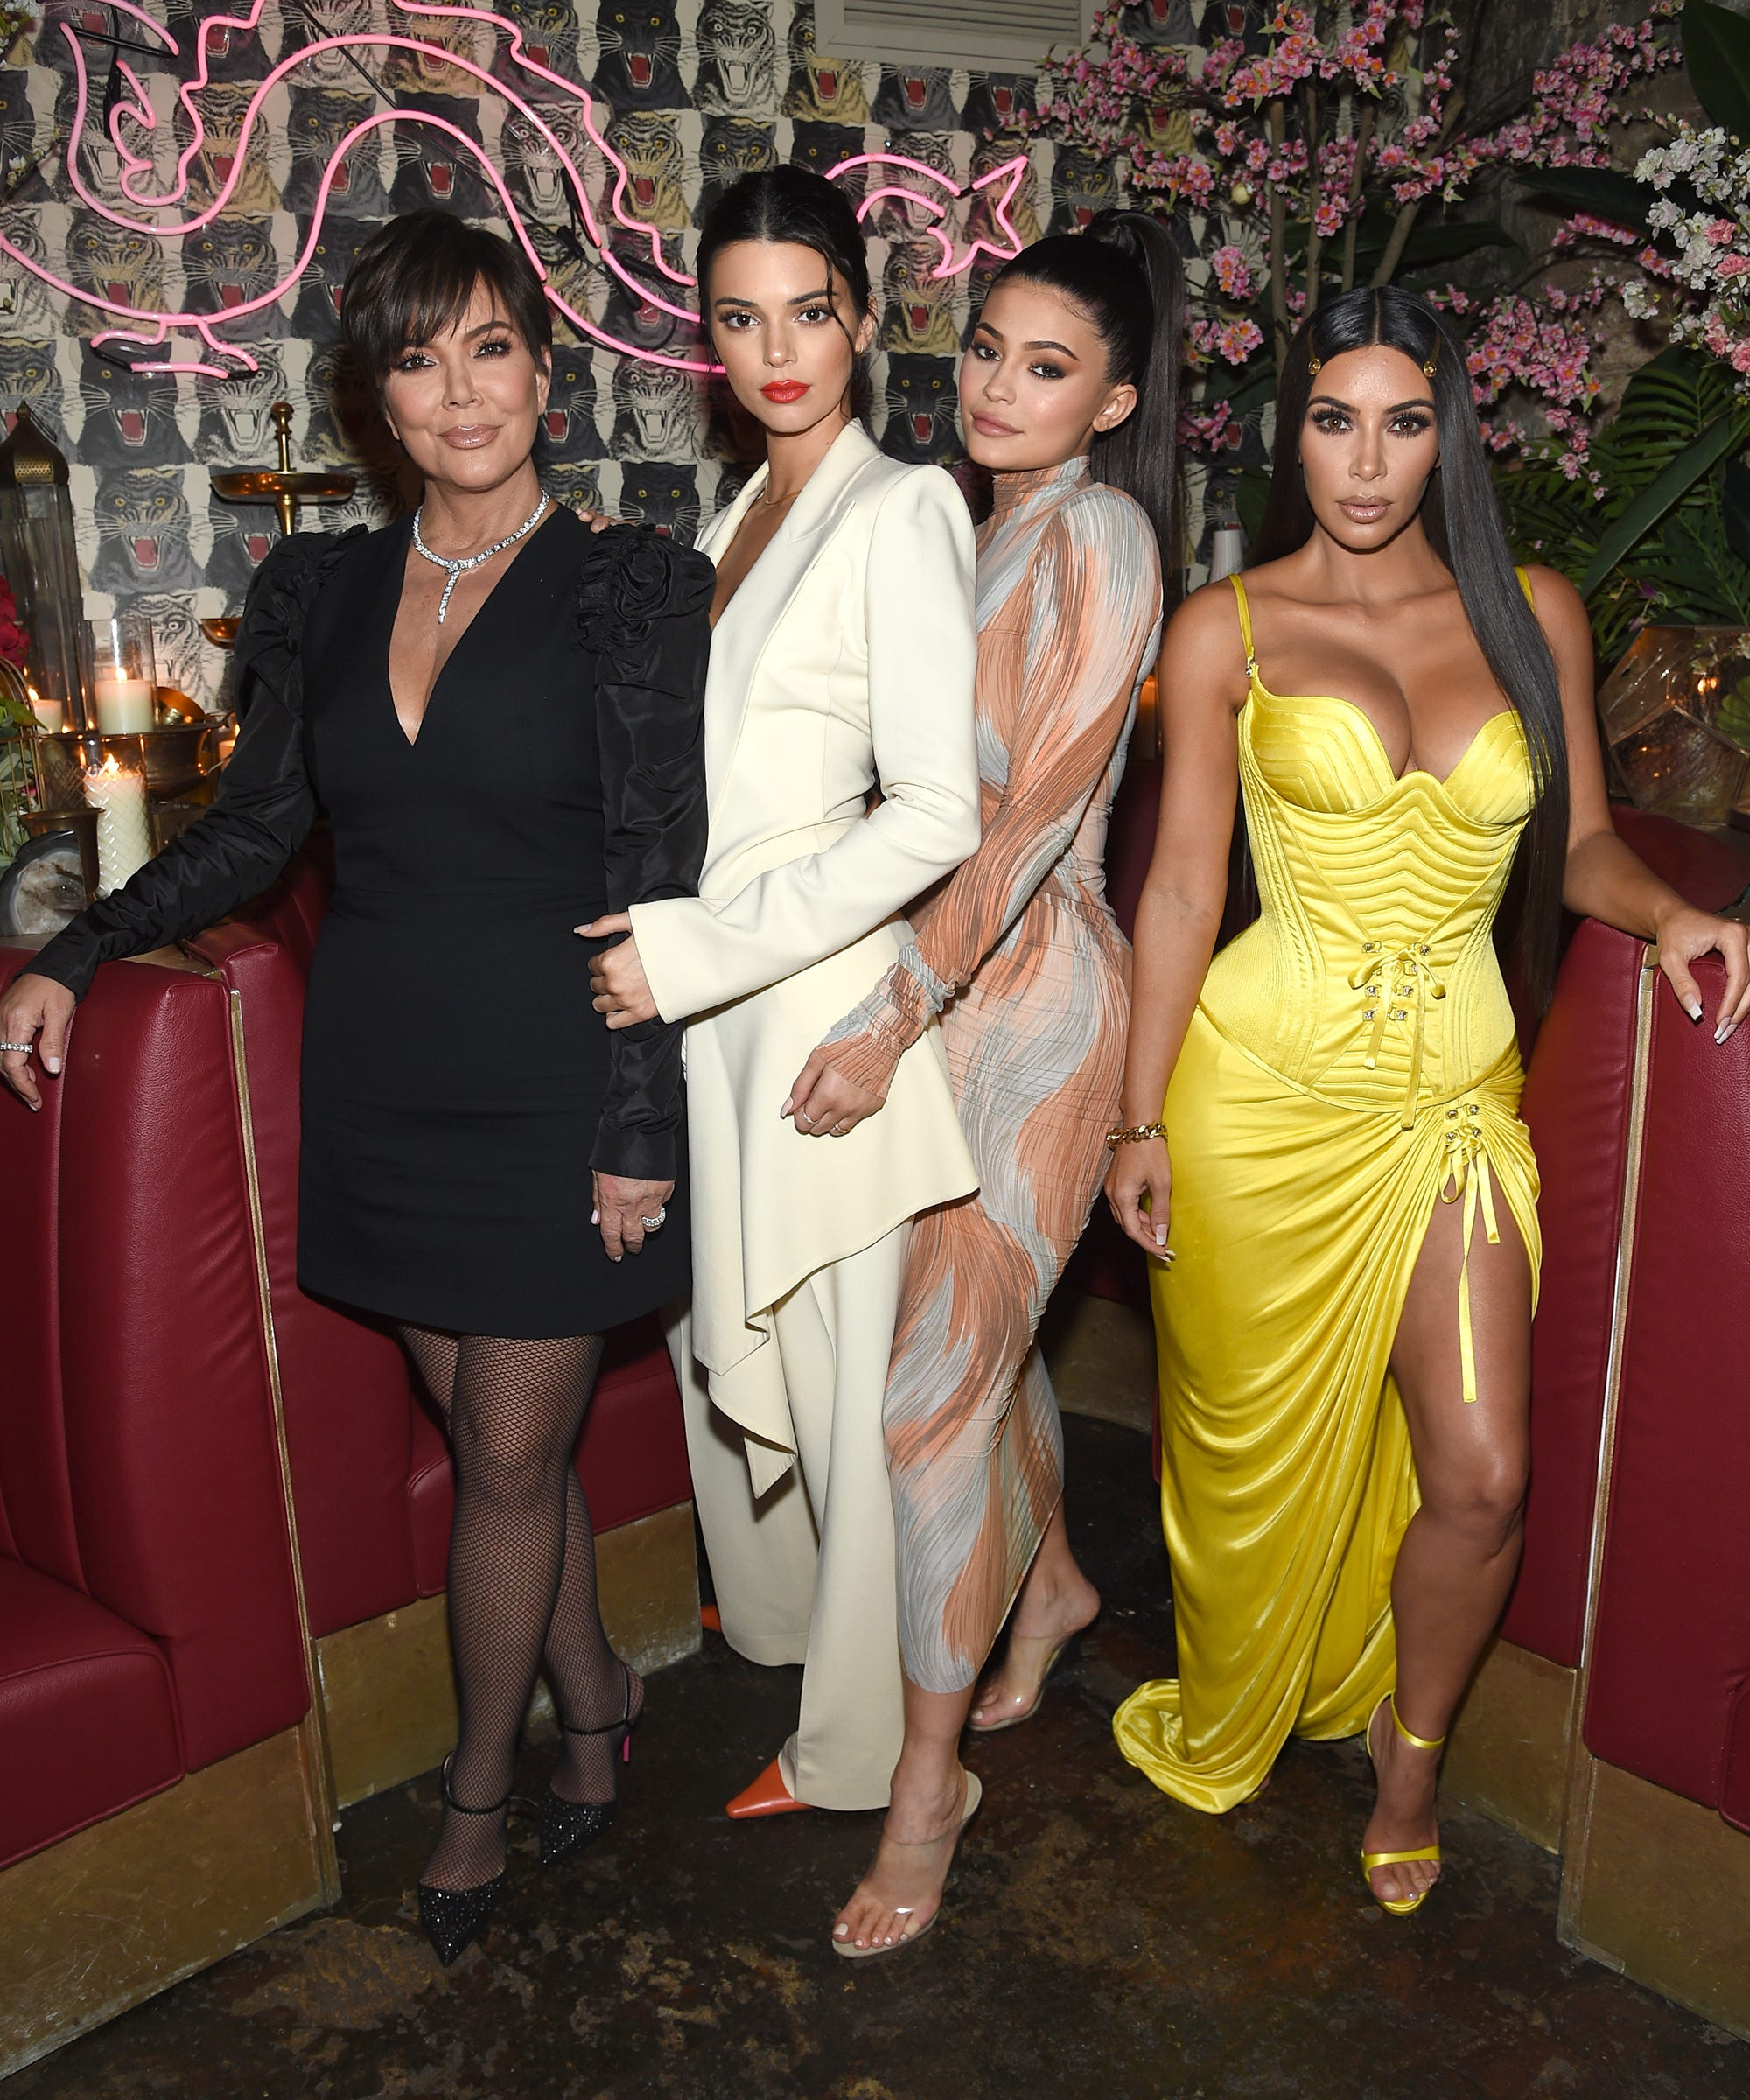 e18c271e3b7f62 Kardashian Net Worth 2019 Kim, Kourtney, Kylie Jenner